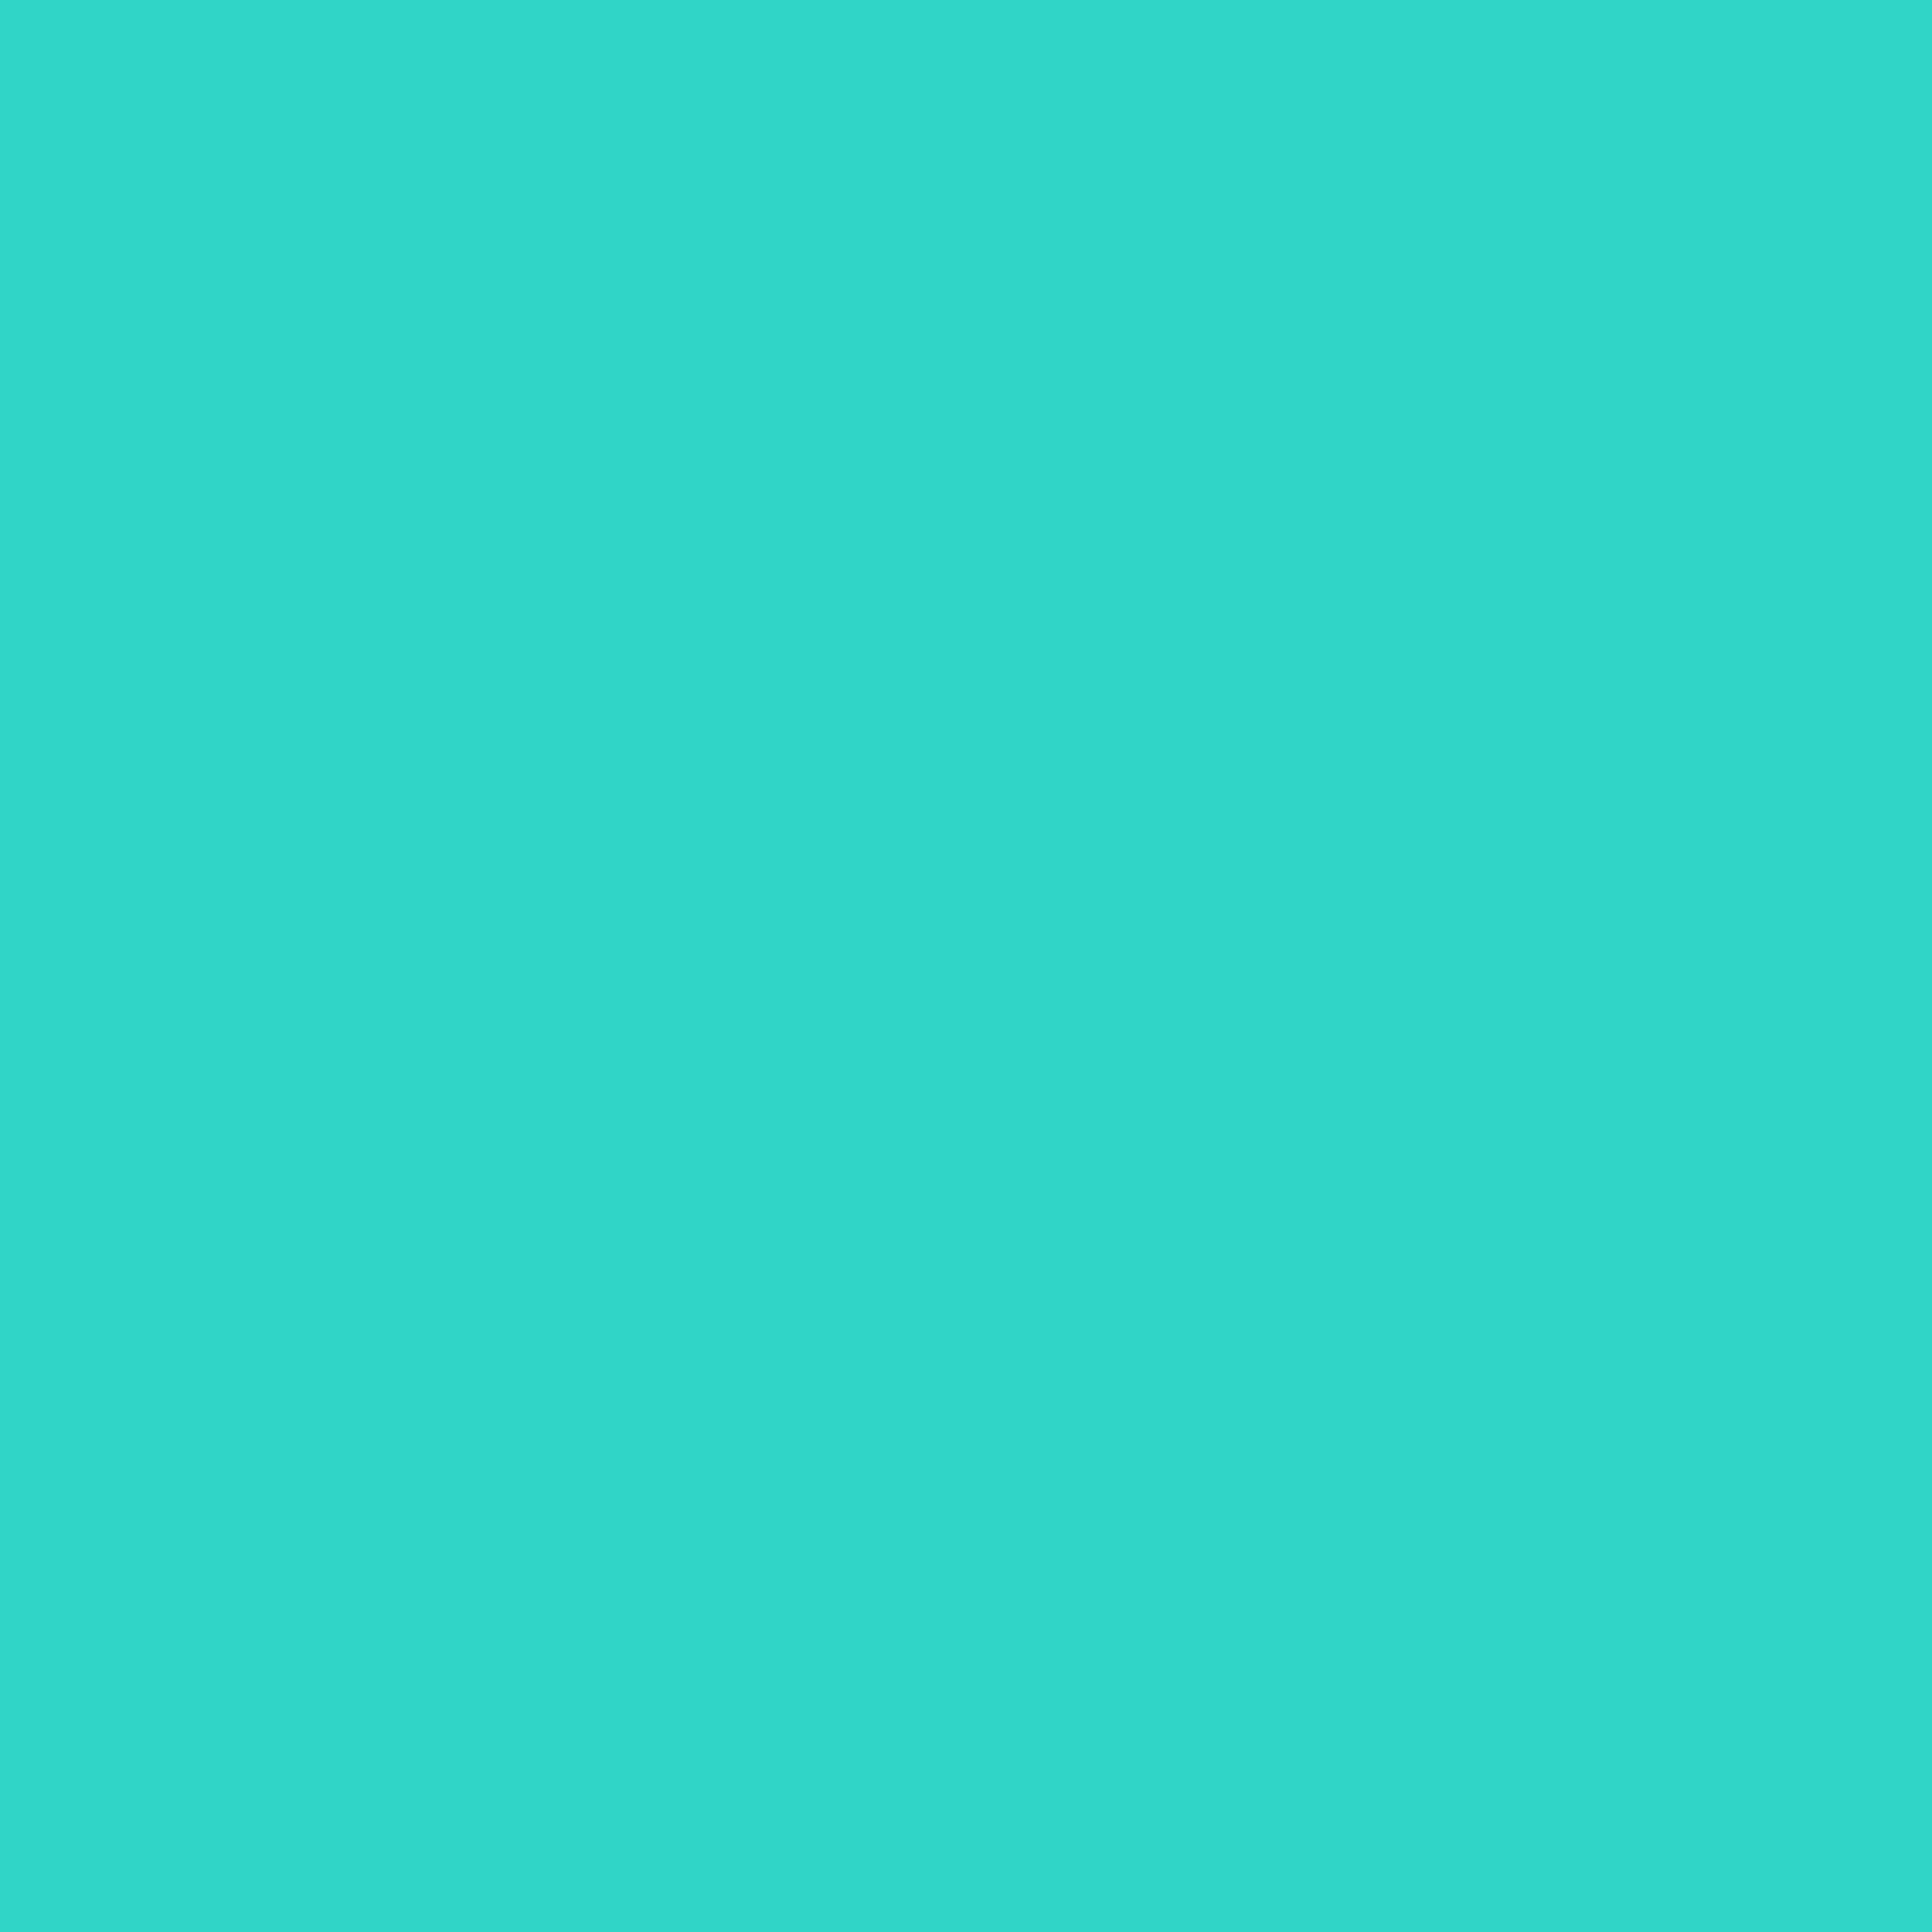 2048x2048 Turquoise Solid Color Background